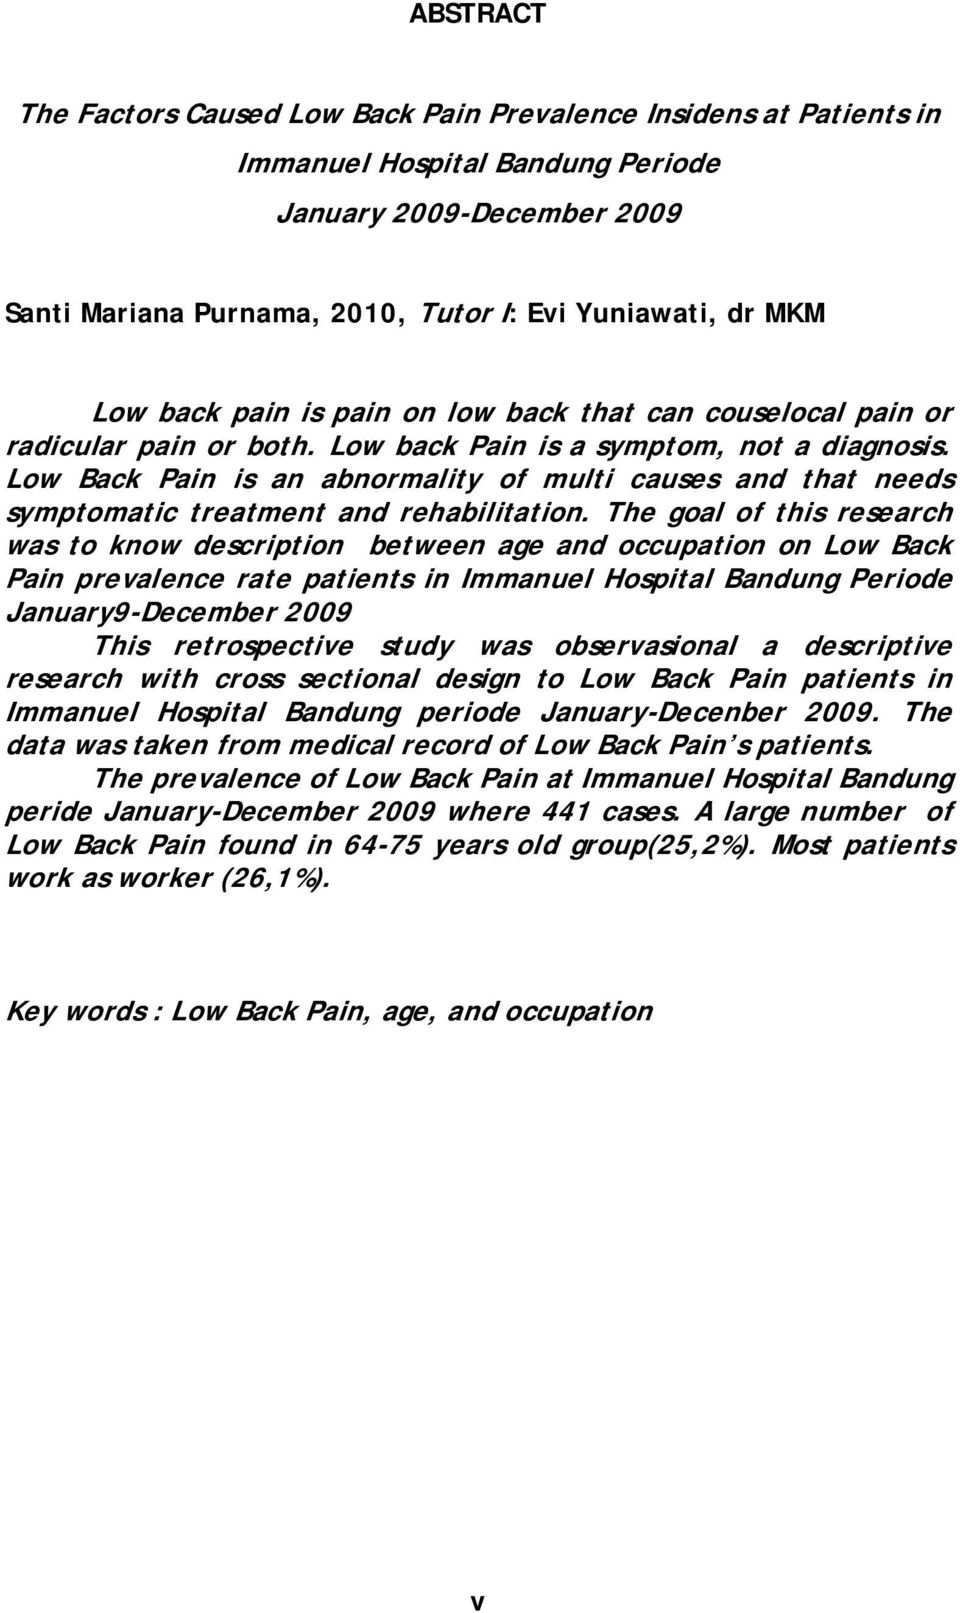 Low Back Pain is an abnormality of multi causes and that needs symptomatic treatment and rehabilitation.